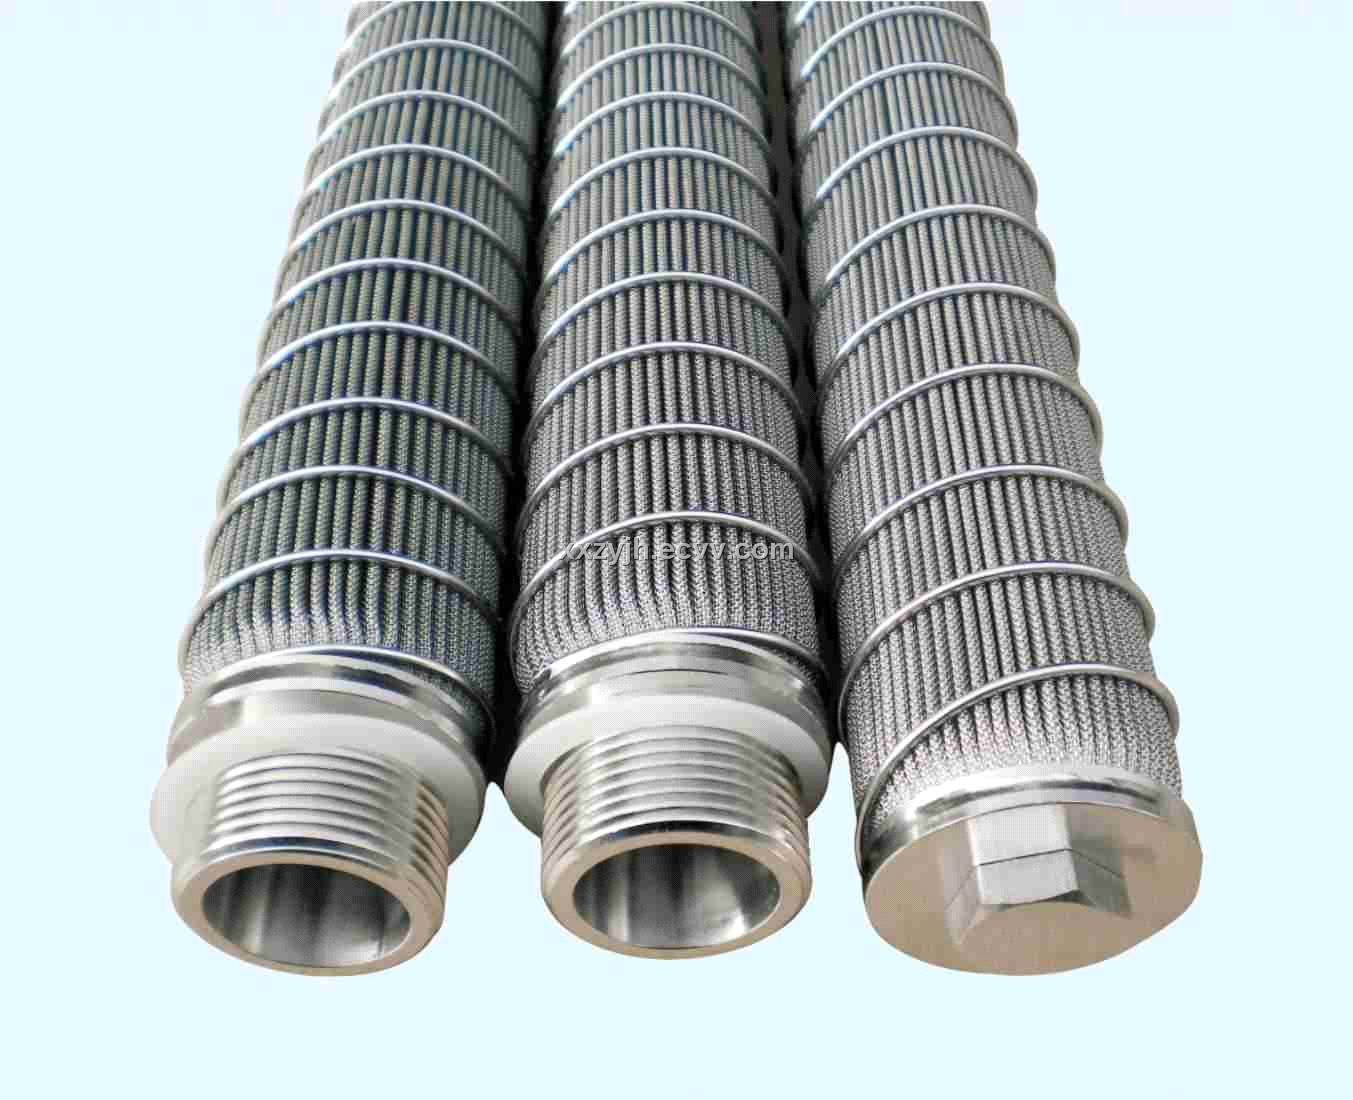 Pleated stainless steel filter cartridge purchasing